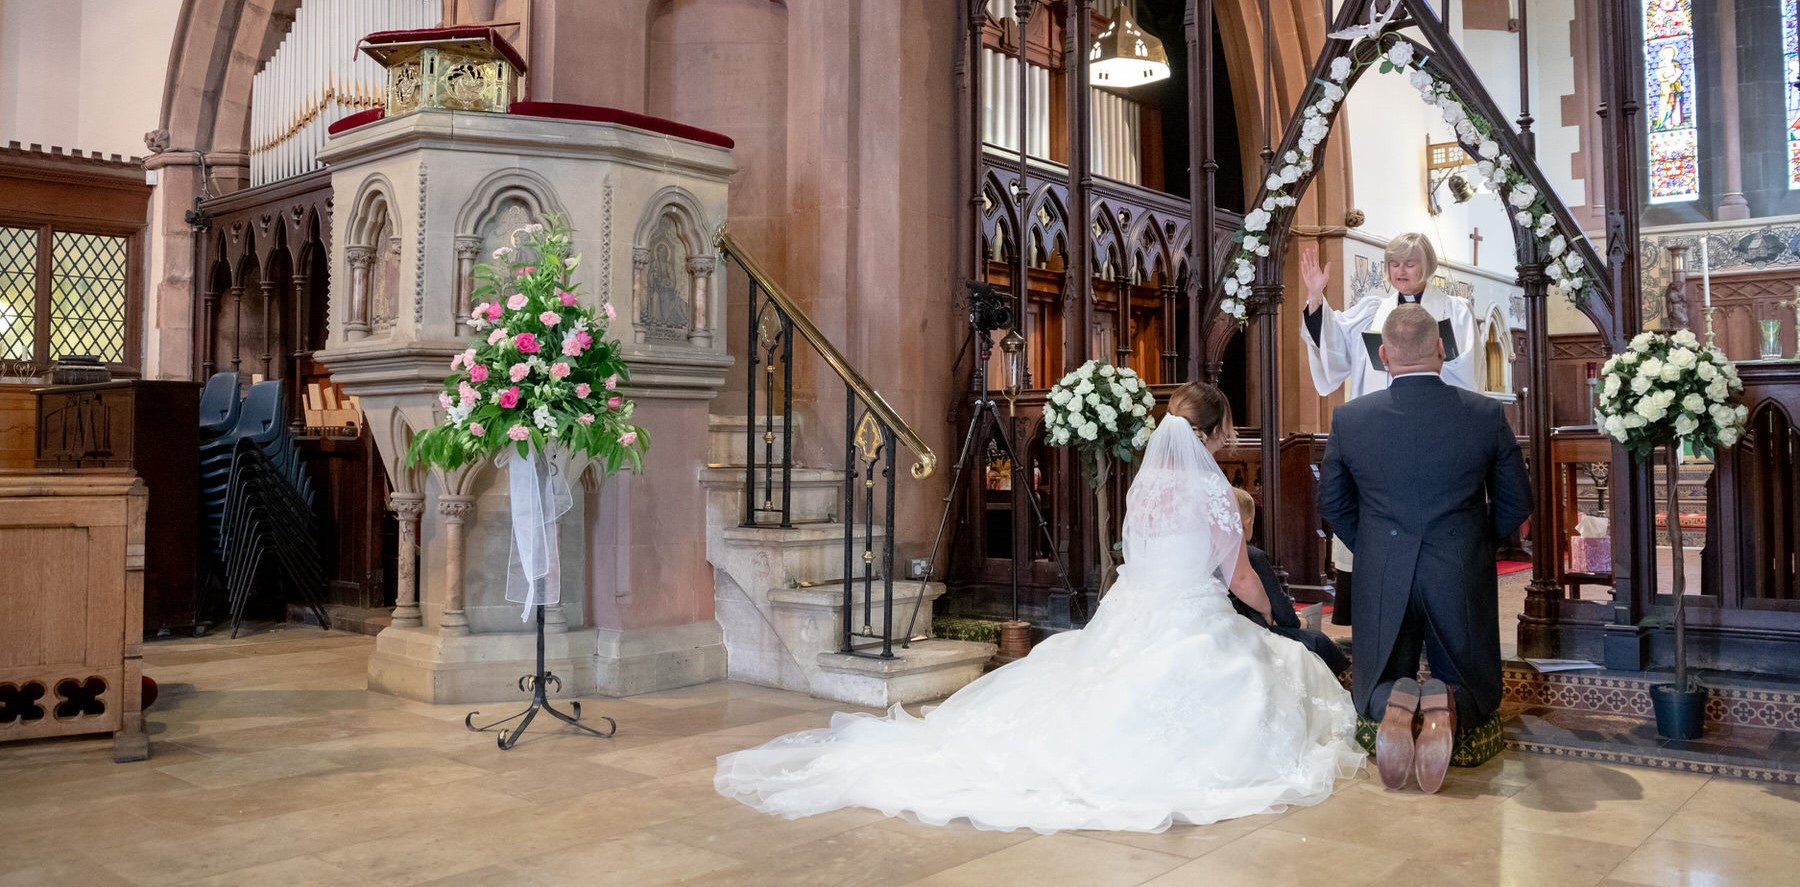 900 bride groom kneel marriage ceremony st marks church pensnett dudley west midlands oxford wedding photographer